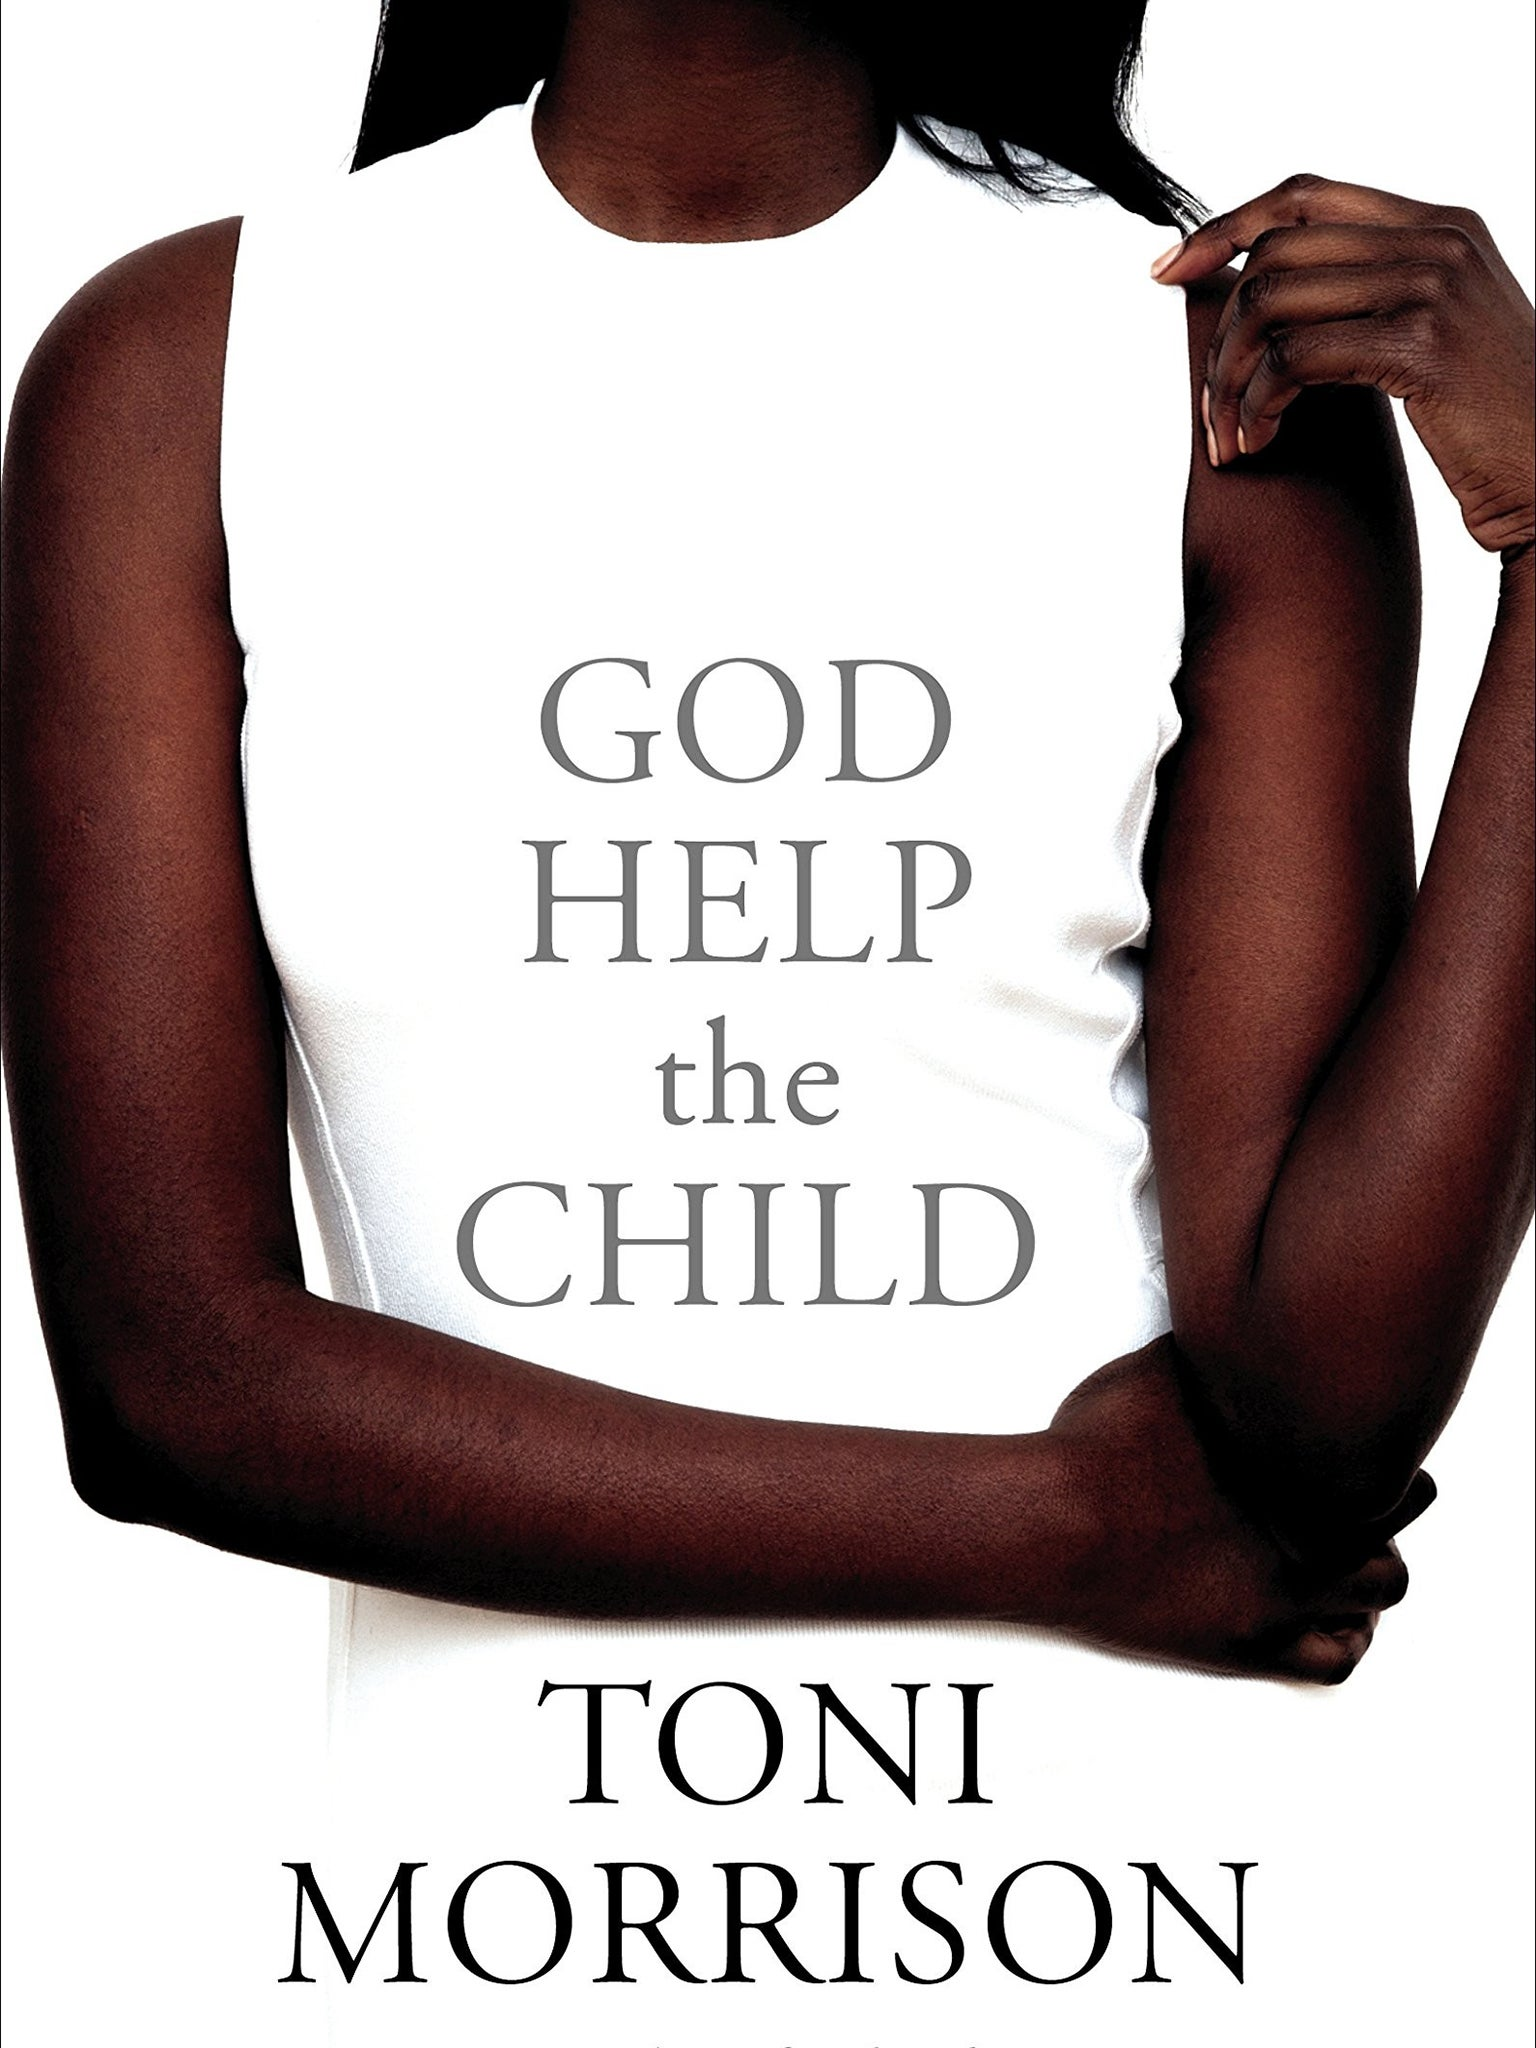 God help the child by toni morrison book review the tyranny of morrison deliberately fandeluxe Images